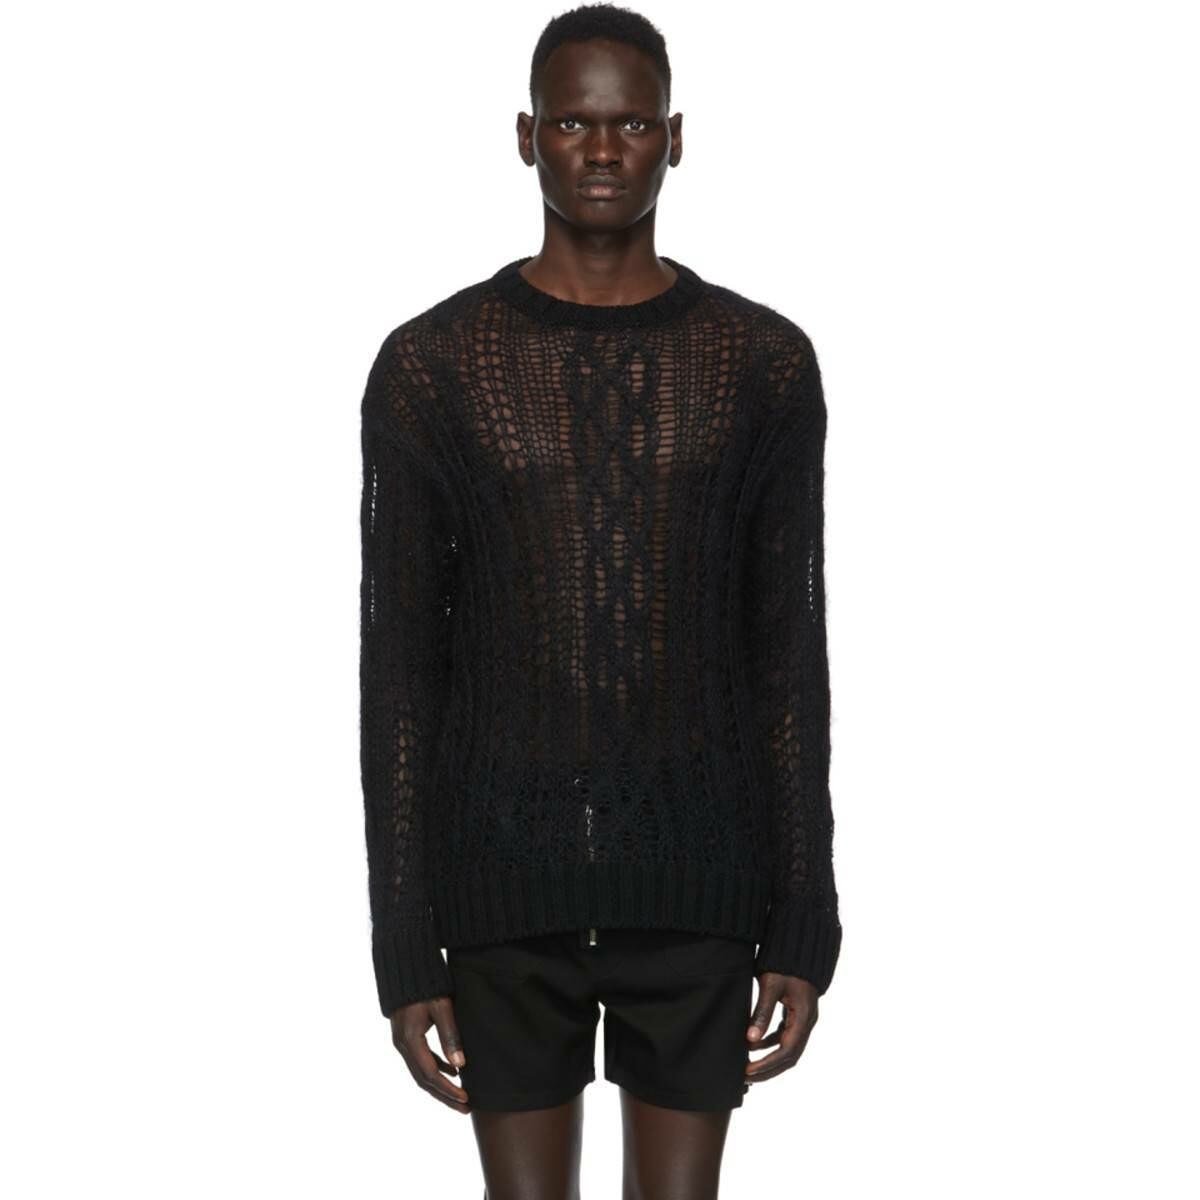 TAKAHIROMIYASHITA TheSoloist. Black Wool Aran Sweater Ssense USA MEN Men FASHION Mens KNITWEAR